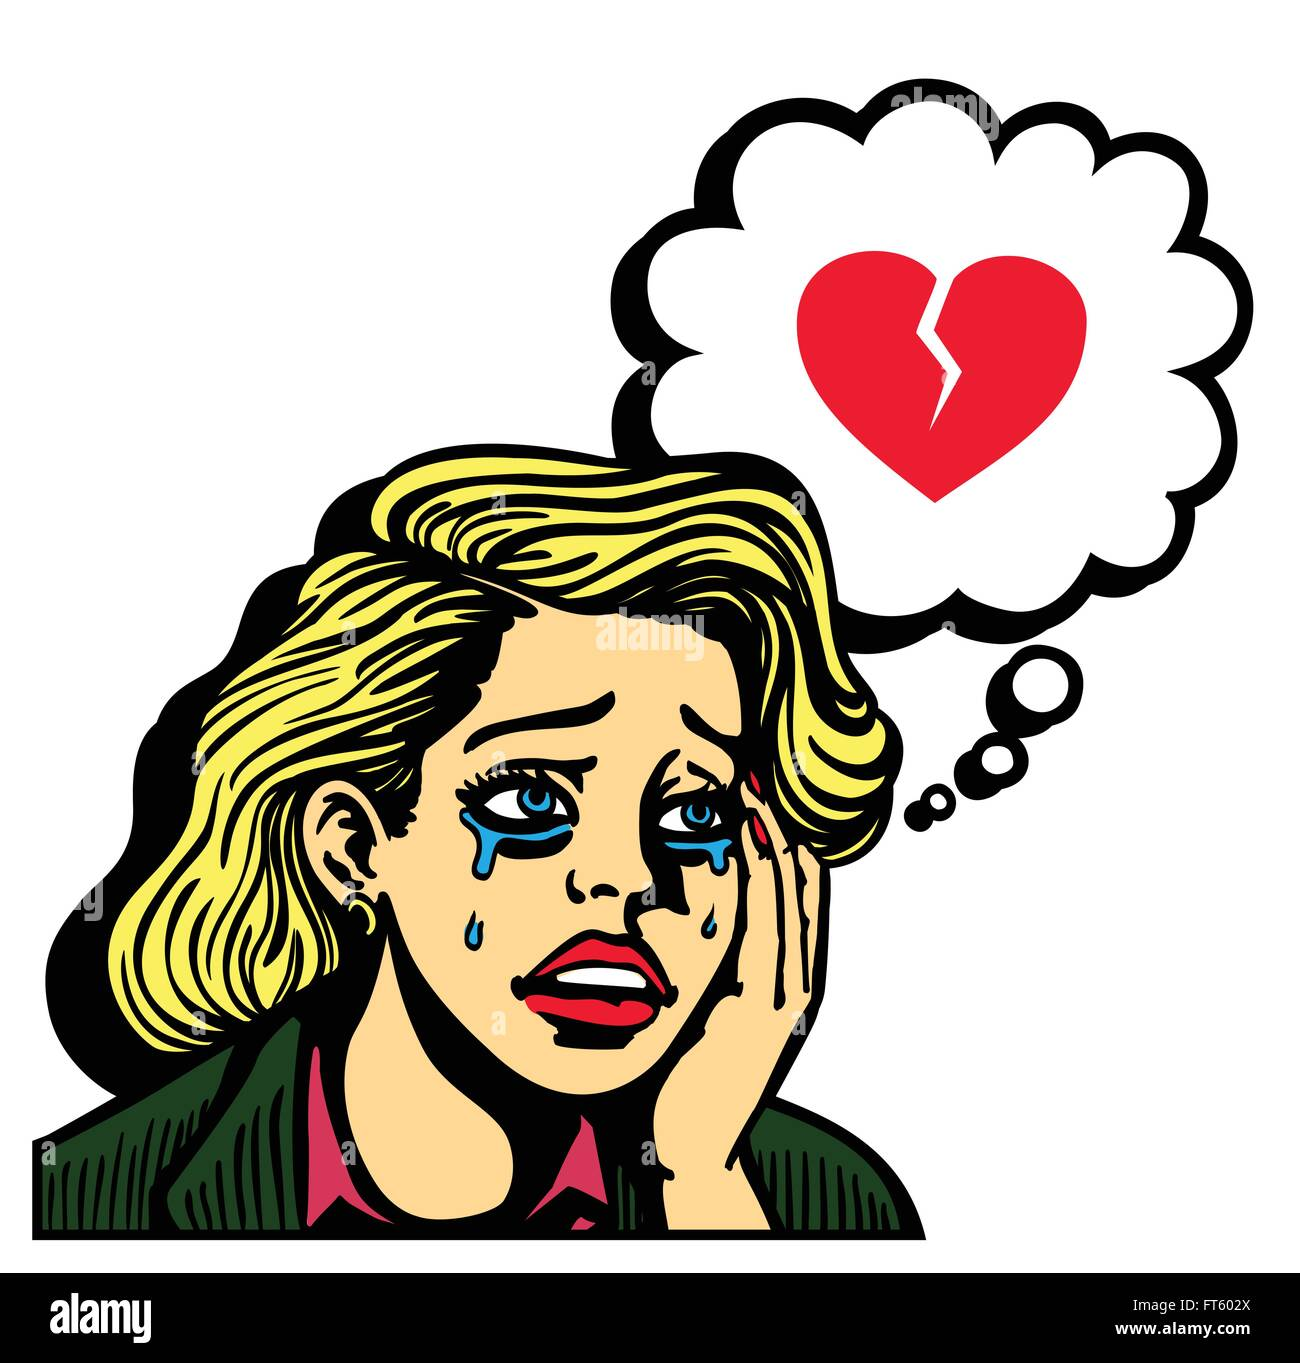 images?q=tbn:ANd9GcQh_l3eQ5xwiPy07kGEXjmjgmBKBRB7H2mRxCGhv1tFWg5c_mWT Ideas For Pop Art Girl Crying @koolgadgetz.com.info